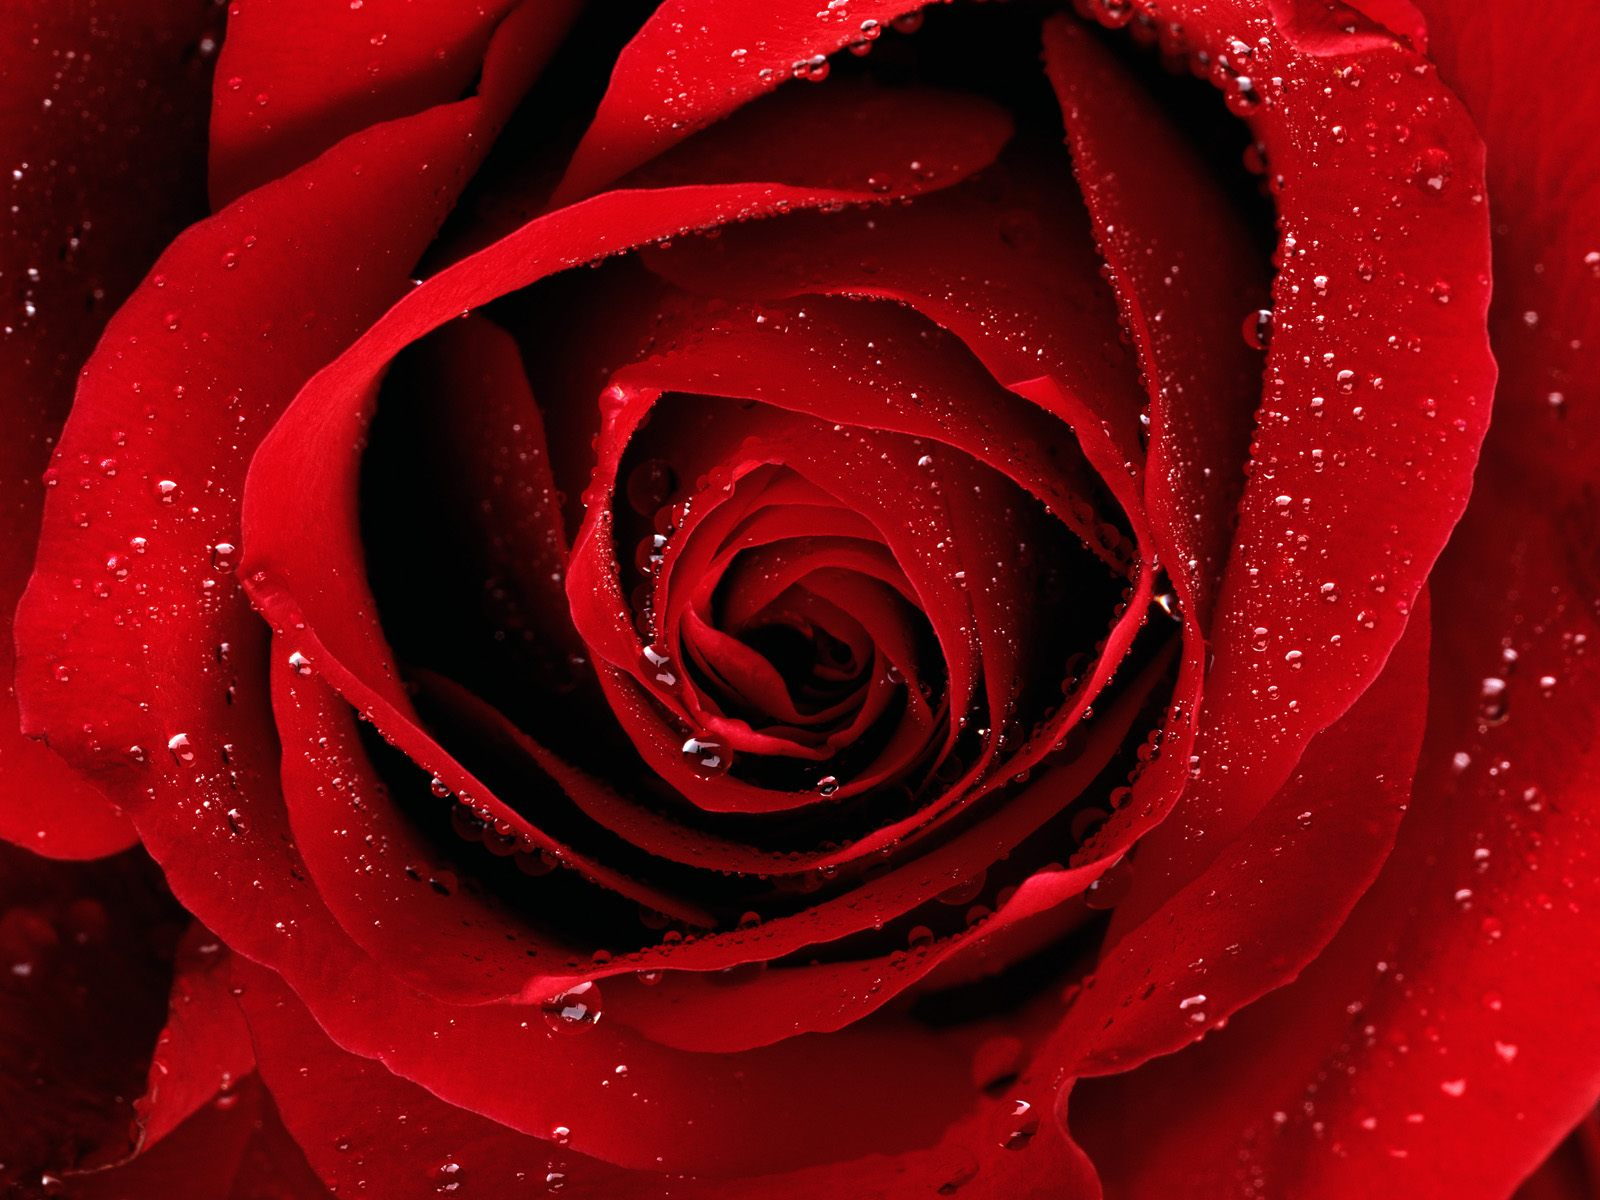 http://1.bp.blogspot.com/_B9O6zClJSyk/TAdlmz_w6CI/AAAAAAAAAsc/aEy7vLy6uKA/s1600/a_red_rose_for_you.jpg